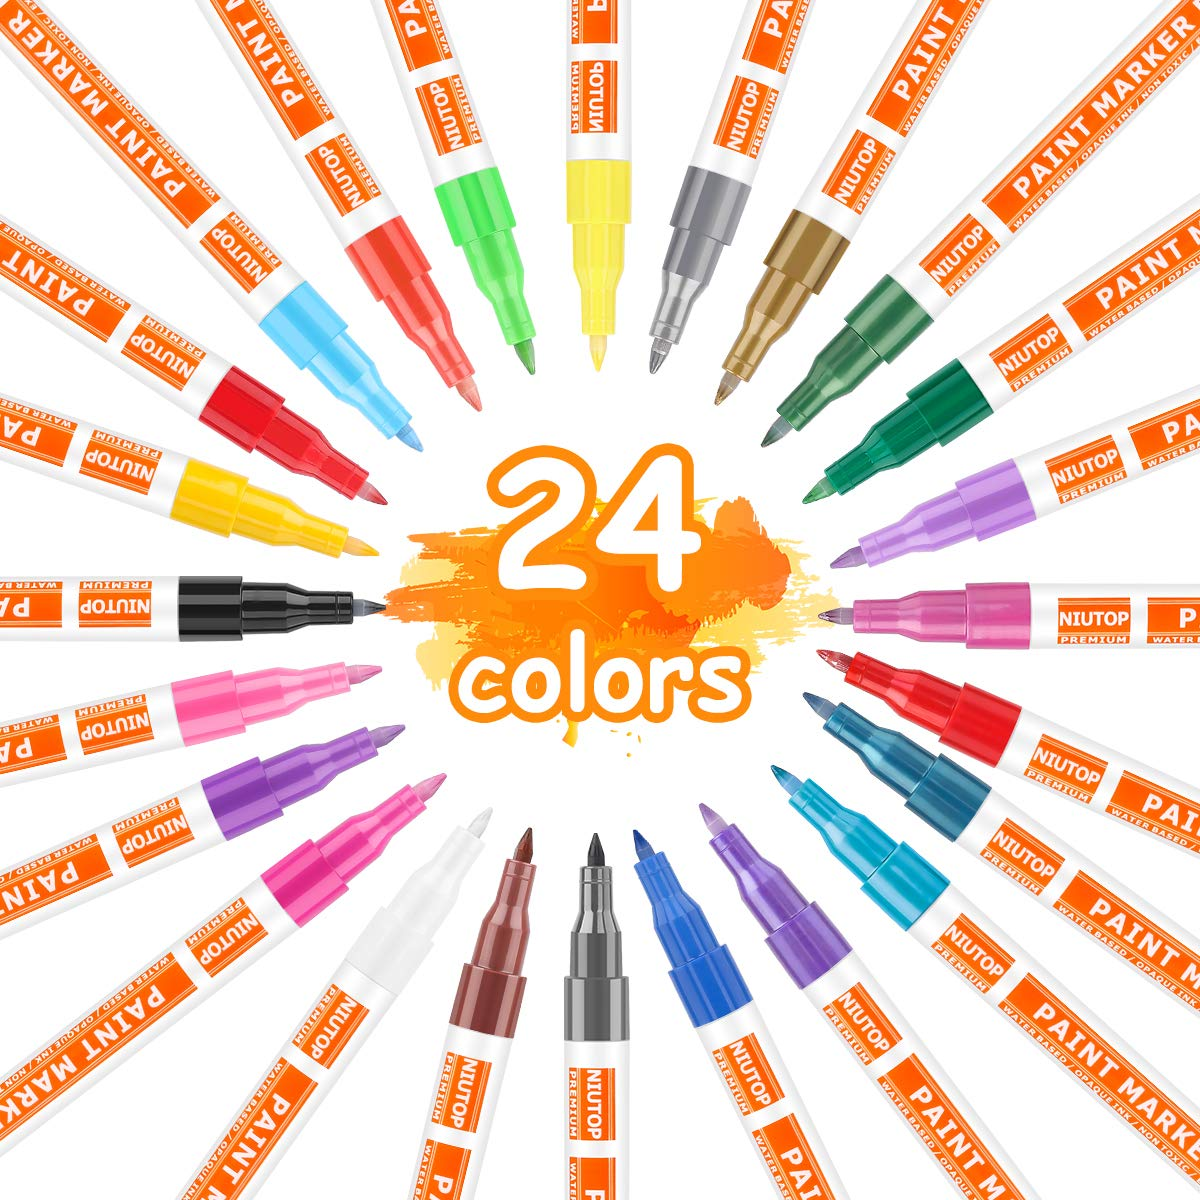 Medium Point Ceramic Metal 32 Bright Colors Paint Markers Kit for Glass Stone Rock /& More Quick-Dry Fabric Acrylic Paint Pens for Rock Wood Acid Free Non Toxic Oil Based Paint Markers